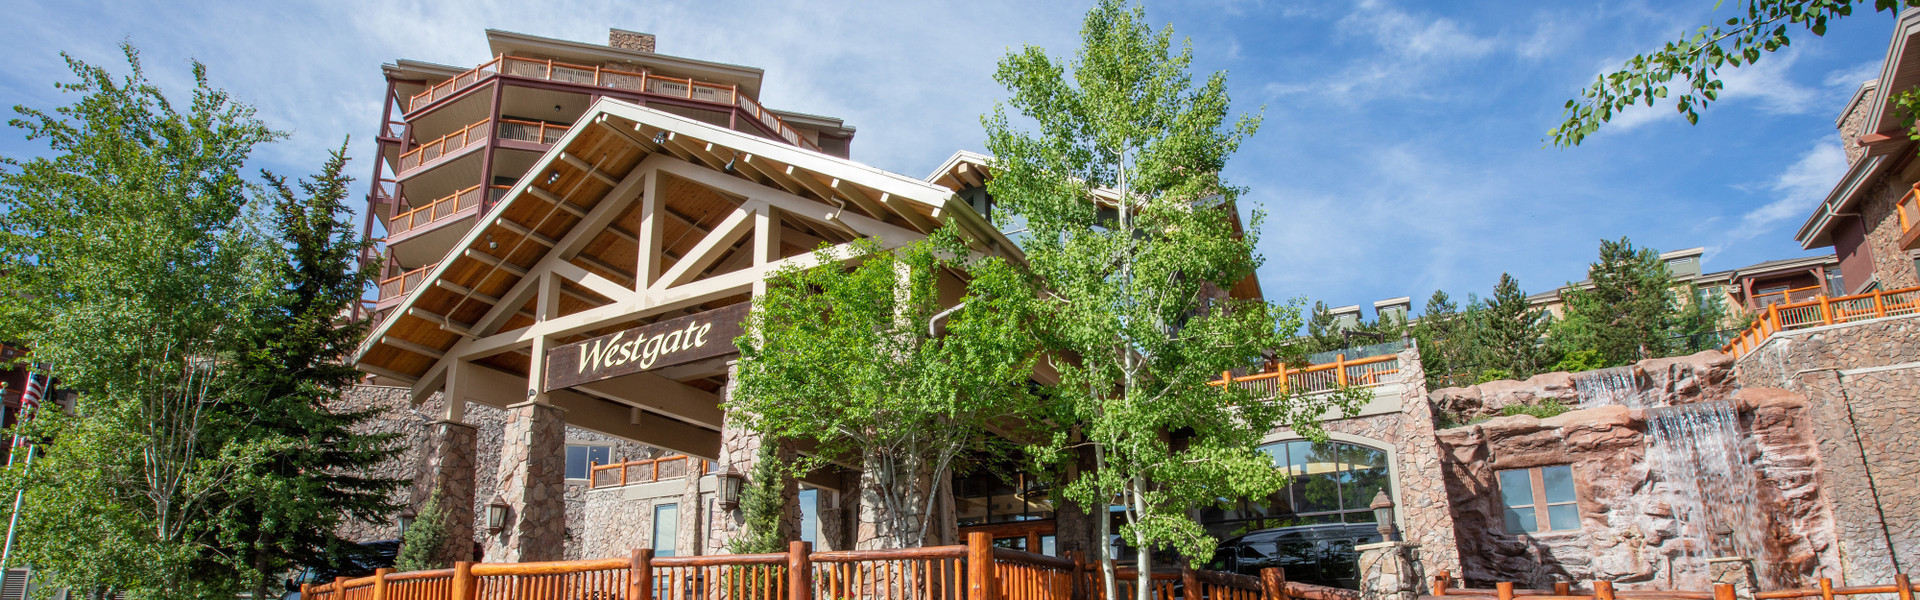 Best Things To Do In Park City Utah In Summer | Park City Resort Hotel